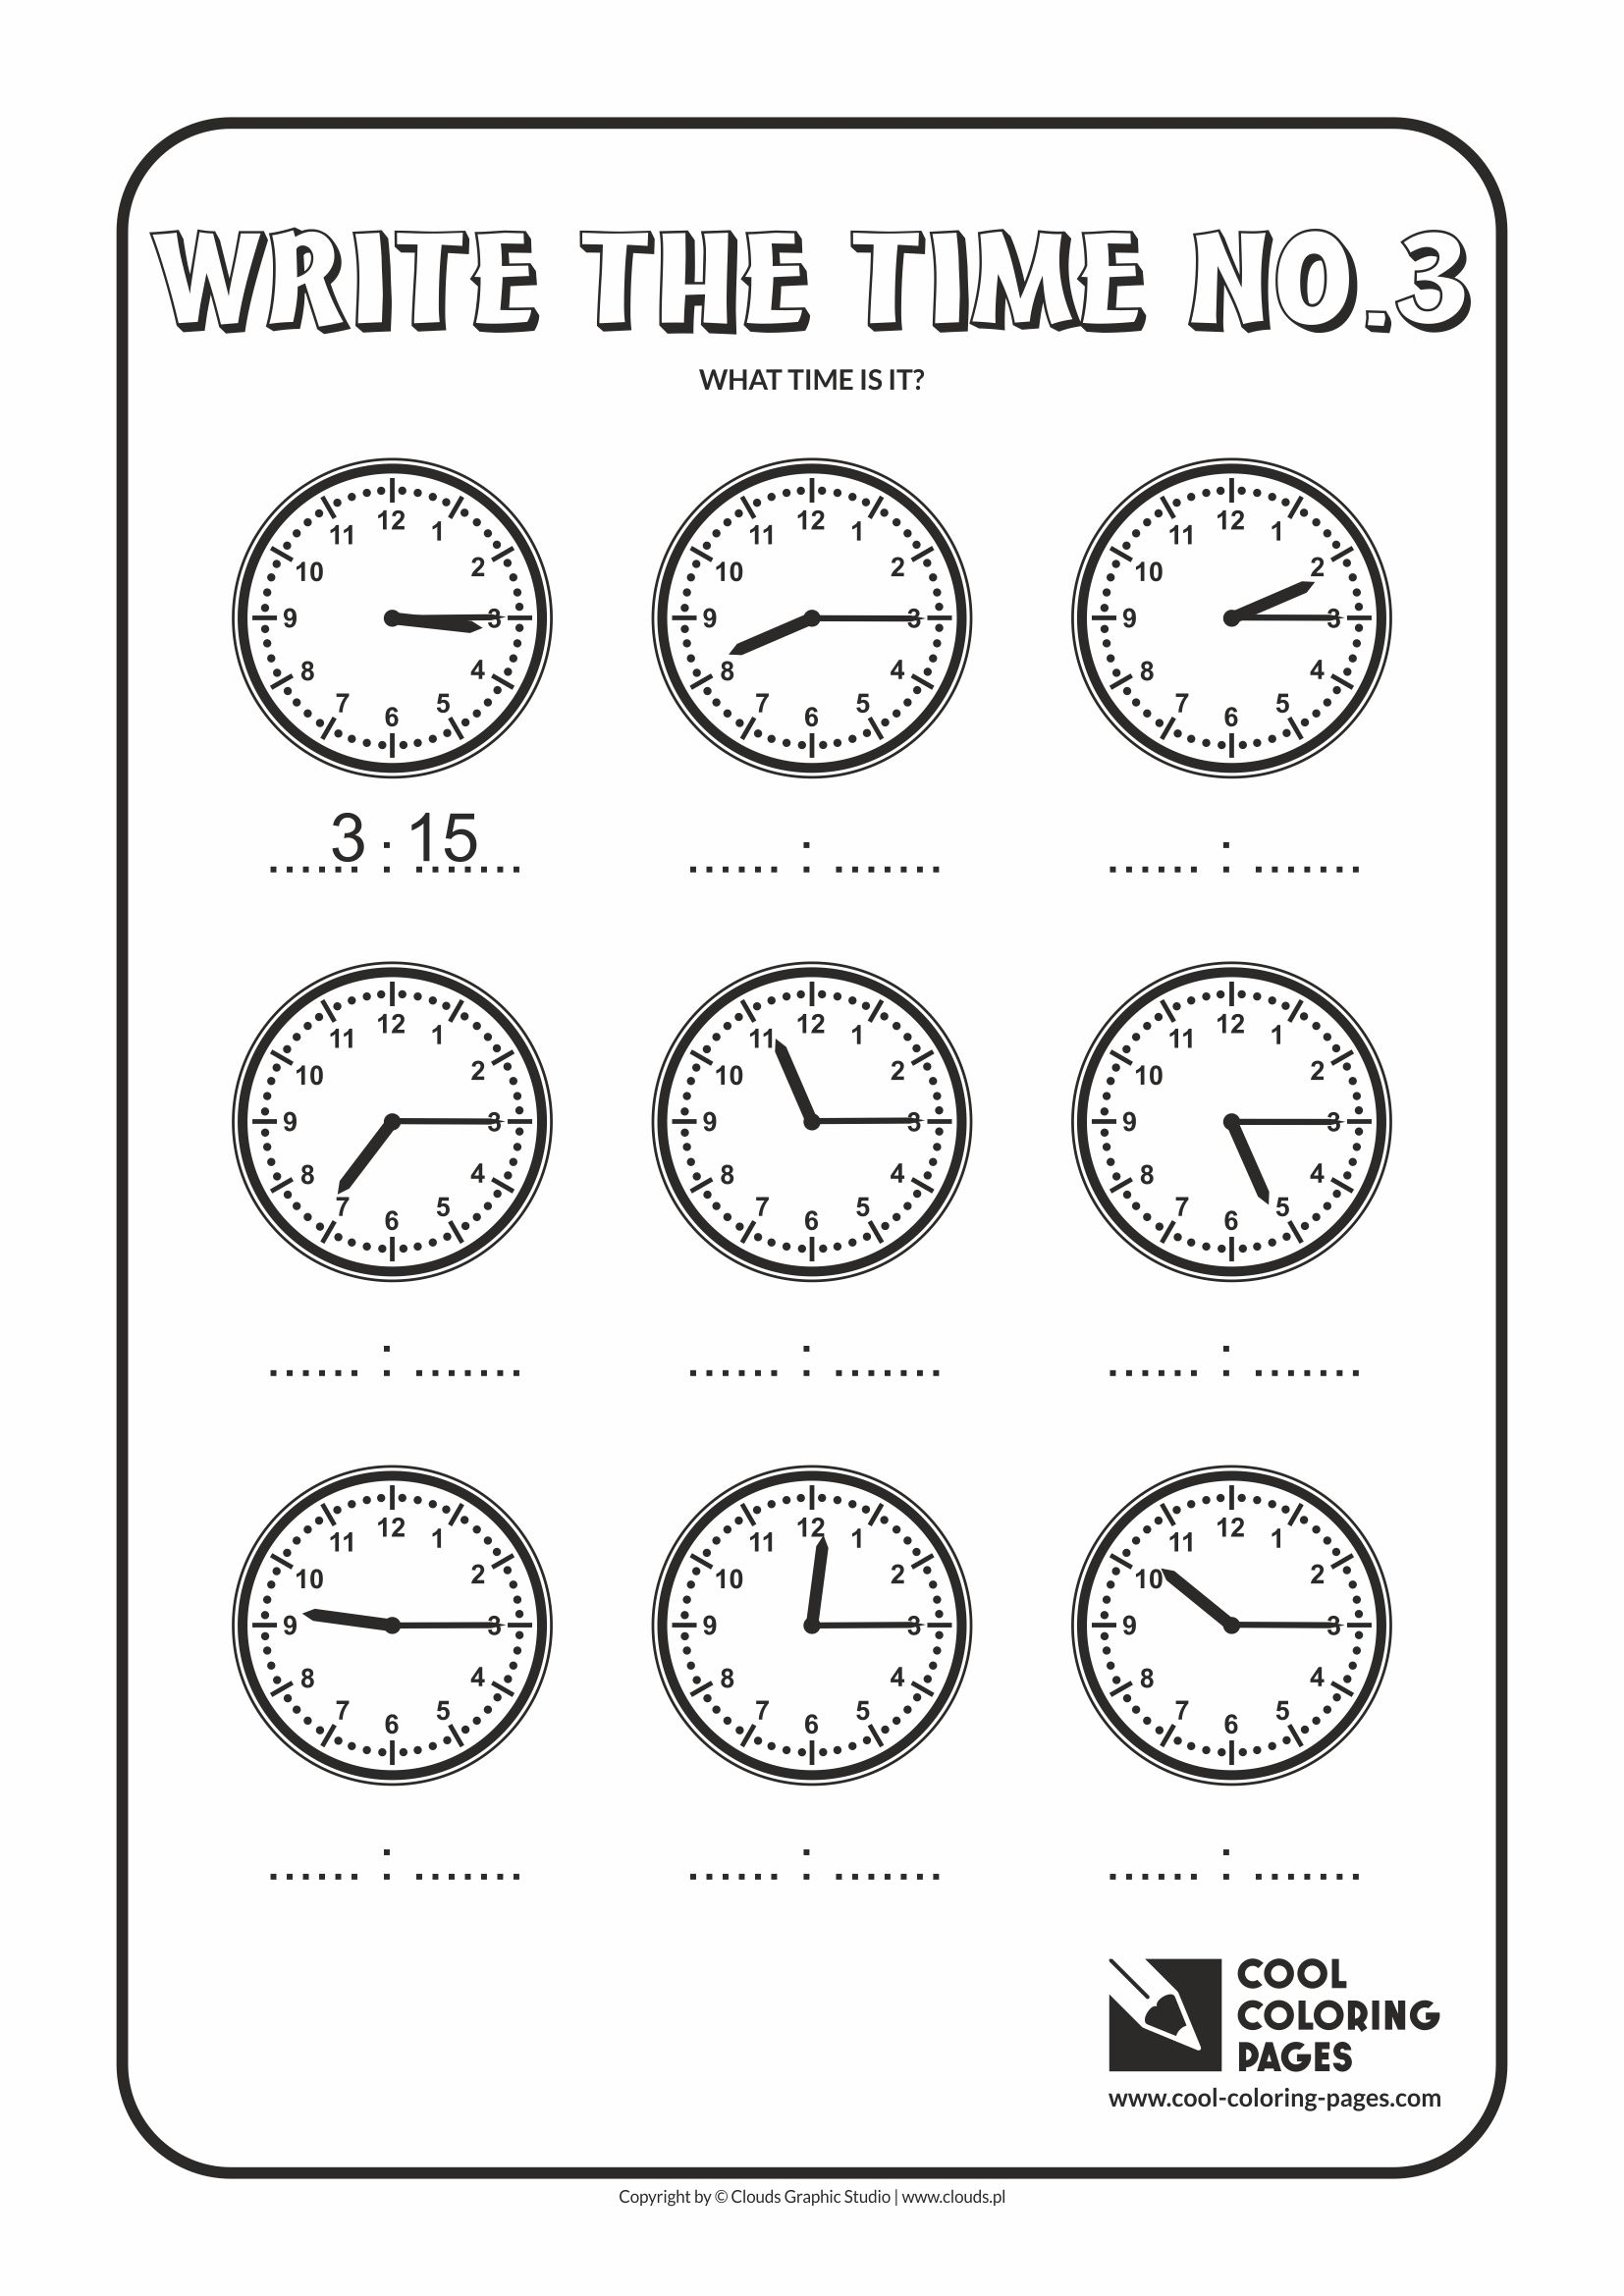 Cool Coloring Pages - Time / Write the time no.3